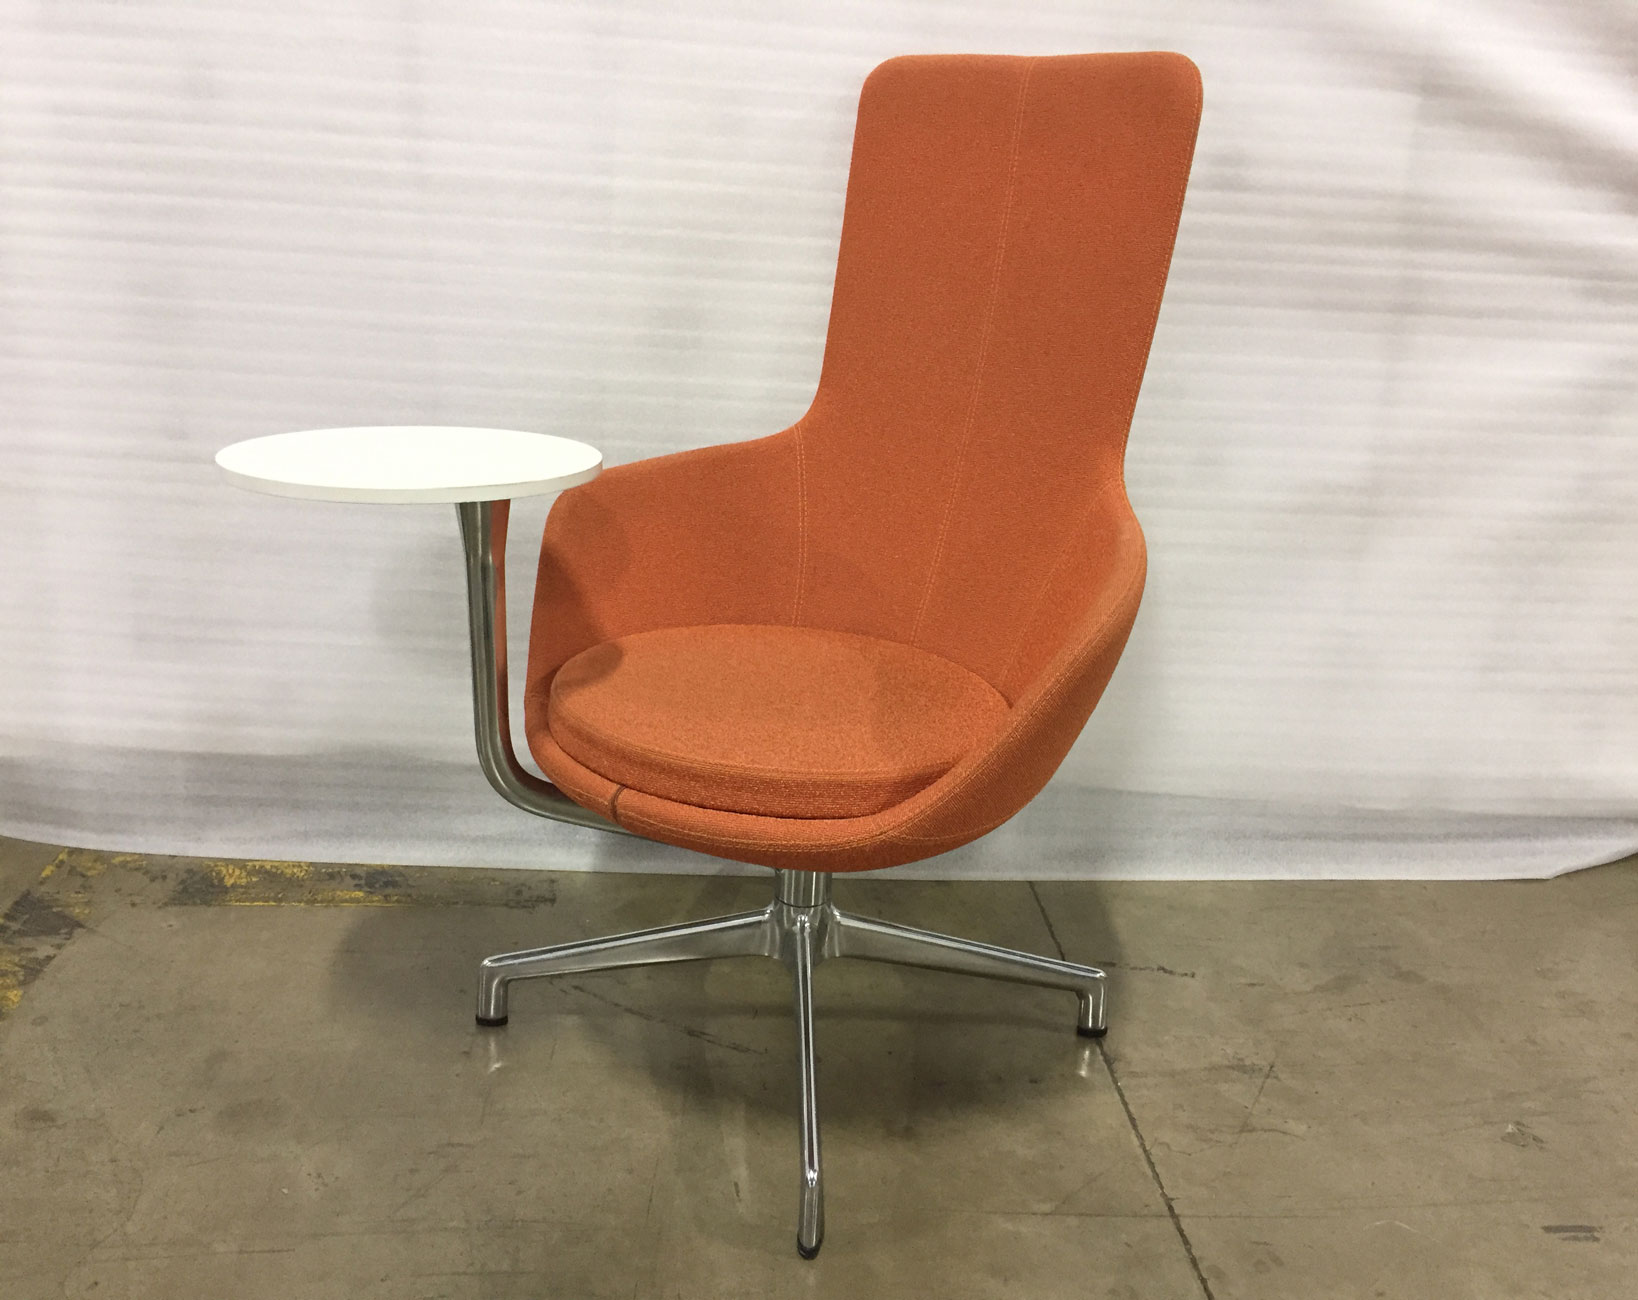 & Used Keilhauer Tablet Arm Chair | Office Furniture | EthoSource